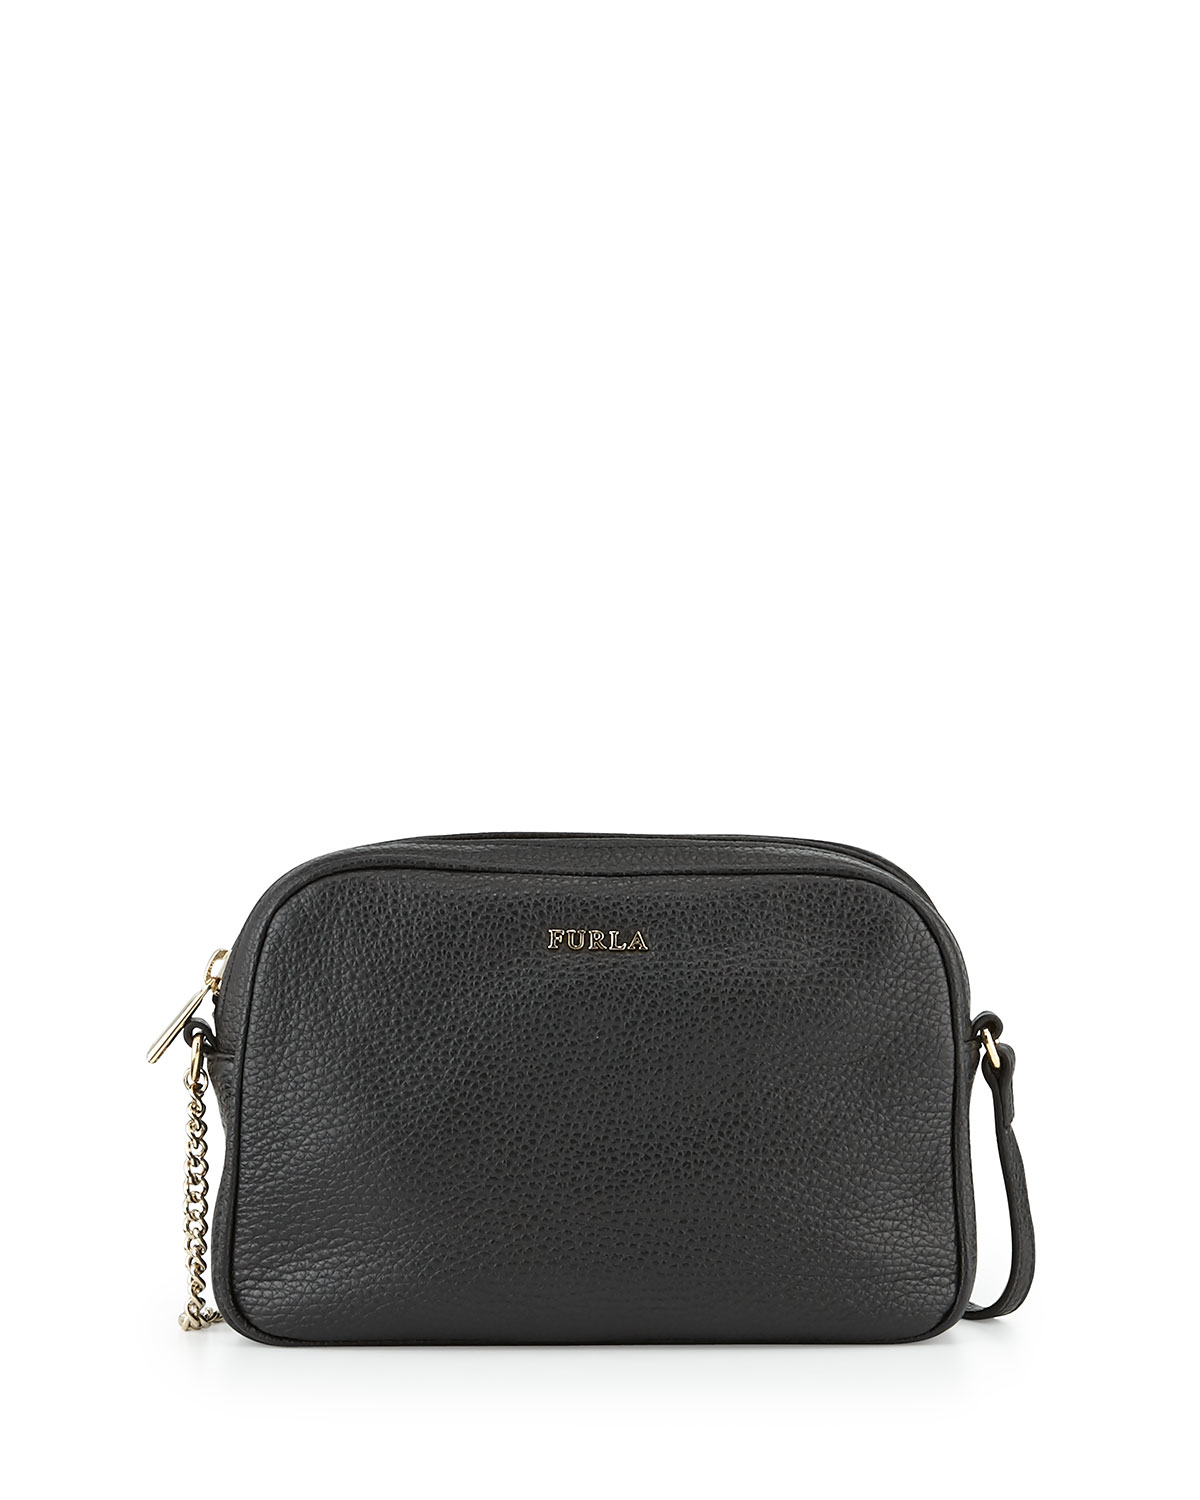 f37d07764a3a Furla Miky Small Leather Crossbody Bag in Black - Lyst